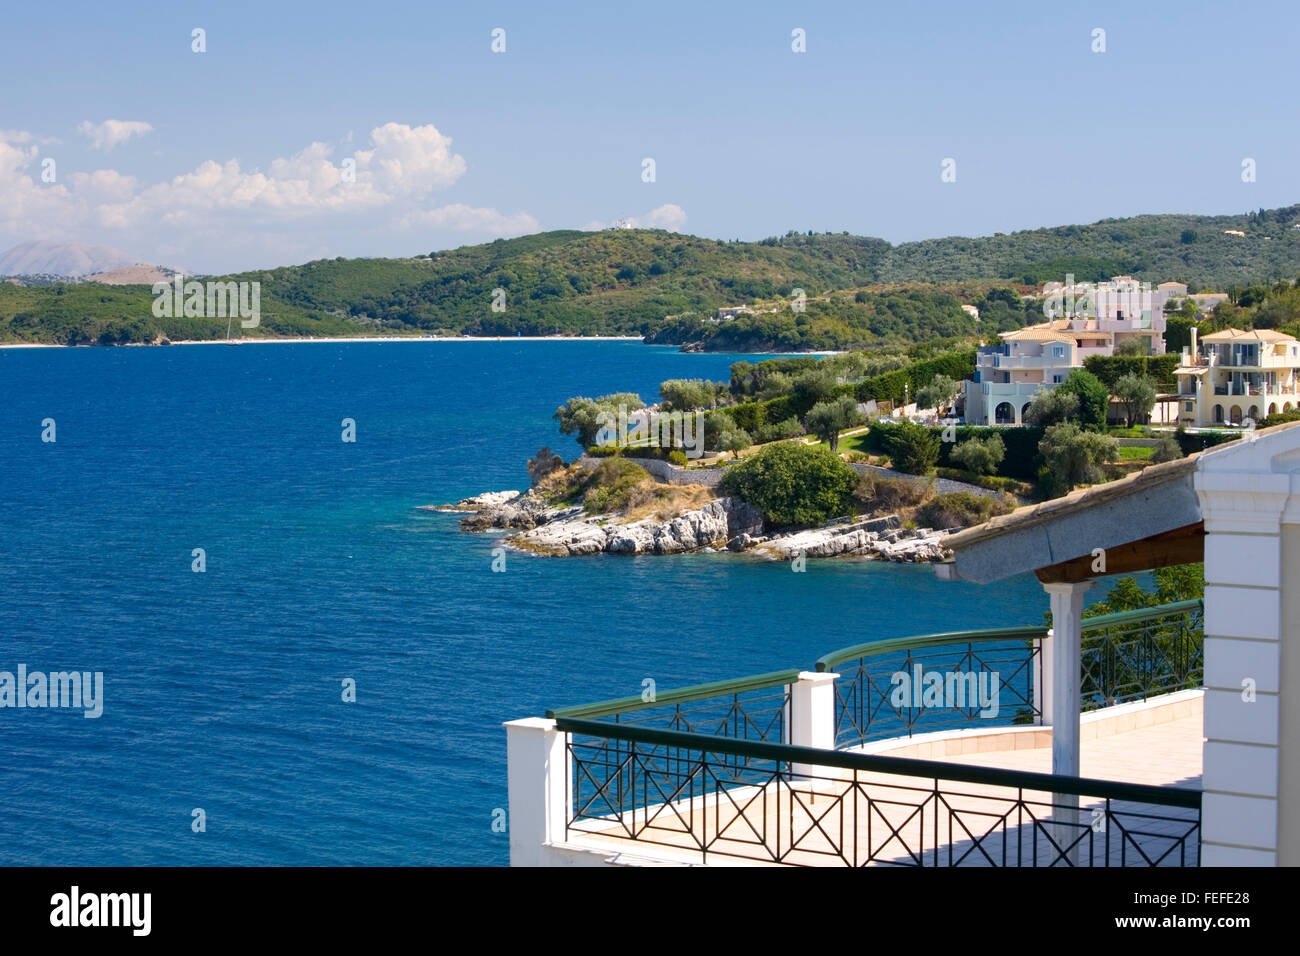 Kassiopi, Corfu, Ionian Islands, Greece. View over harbour entrance to the deep blue waters of Avlaki Bay. - Stock Image